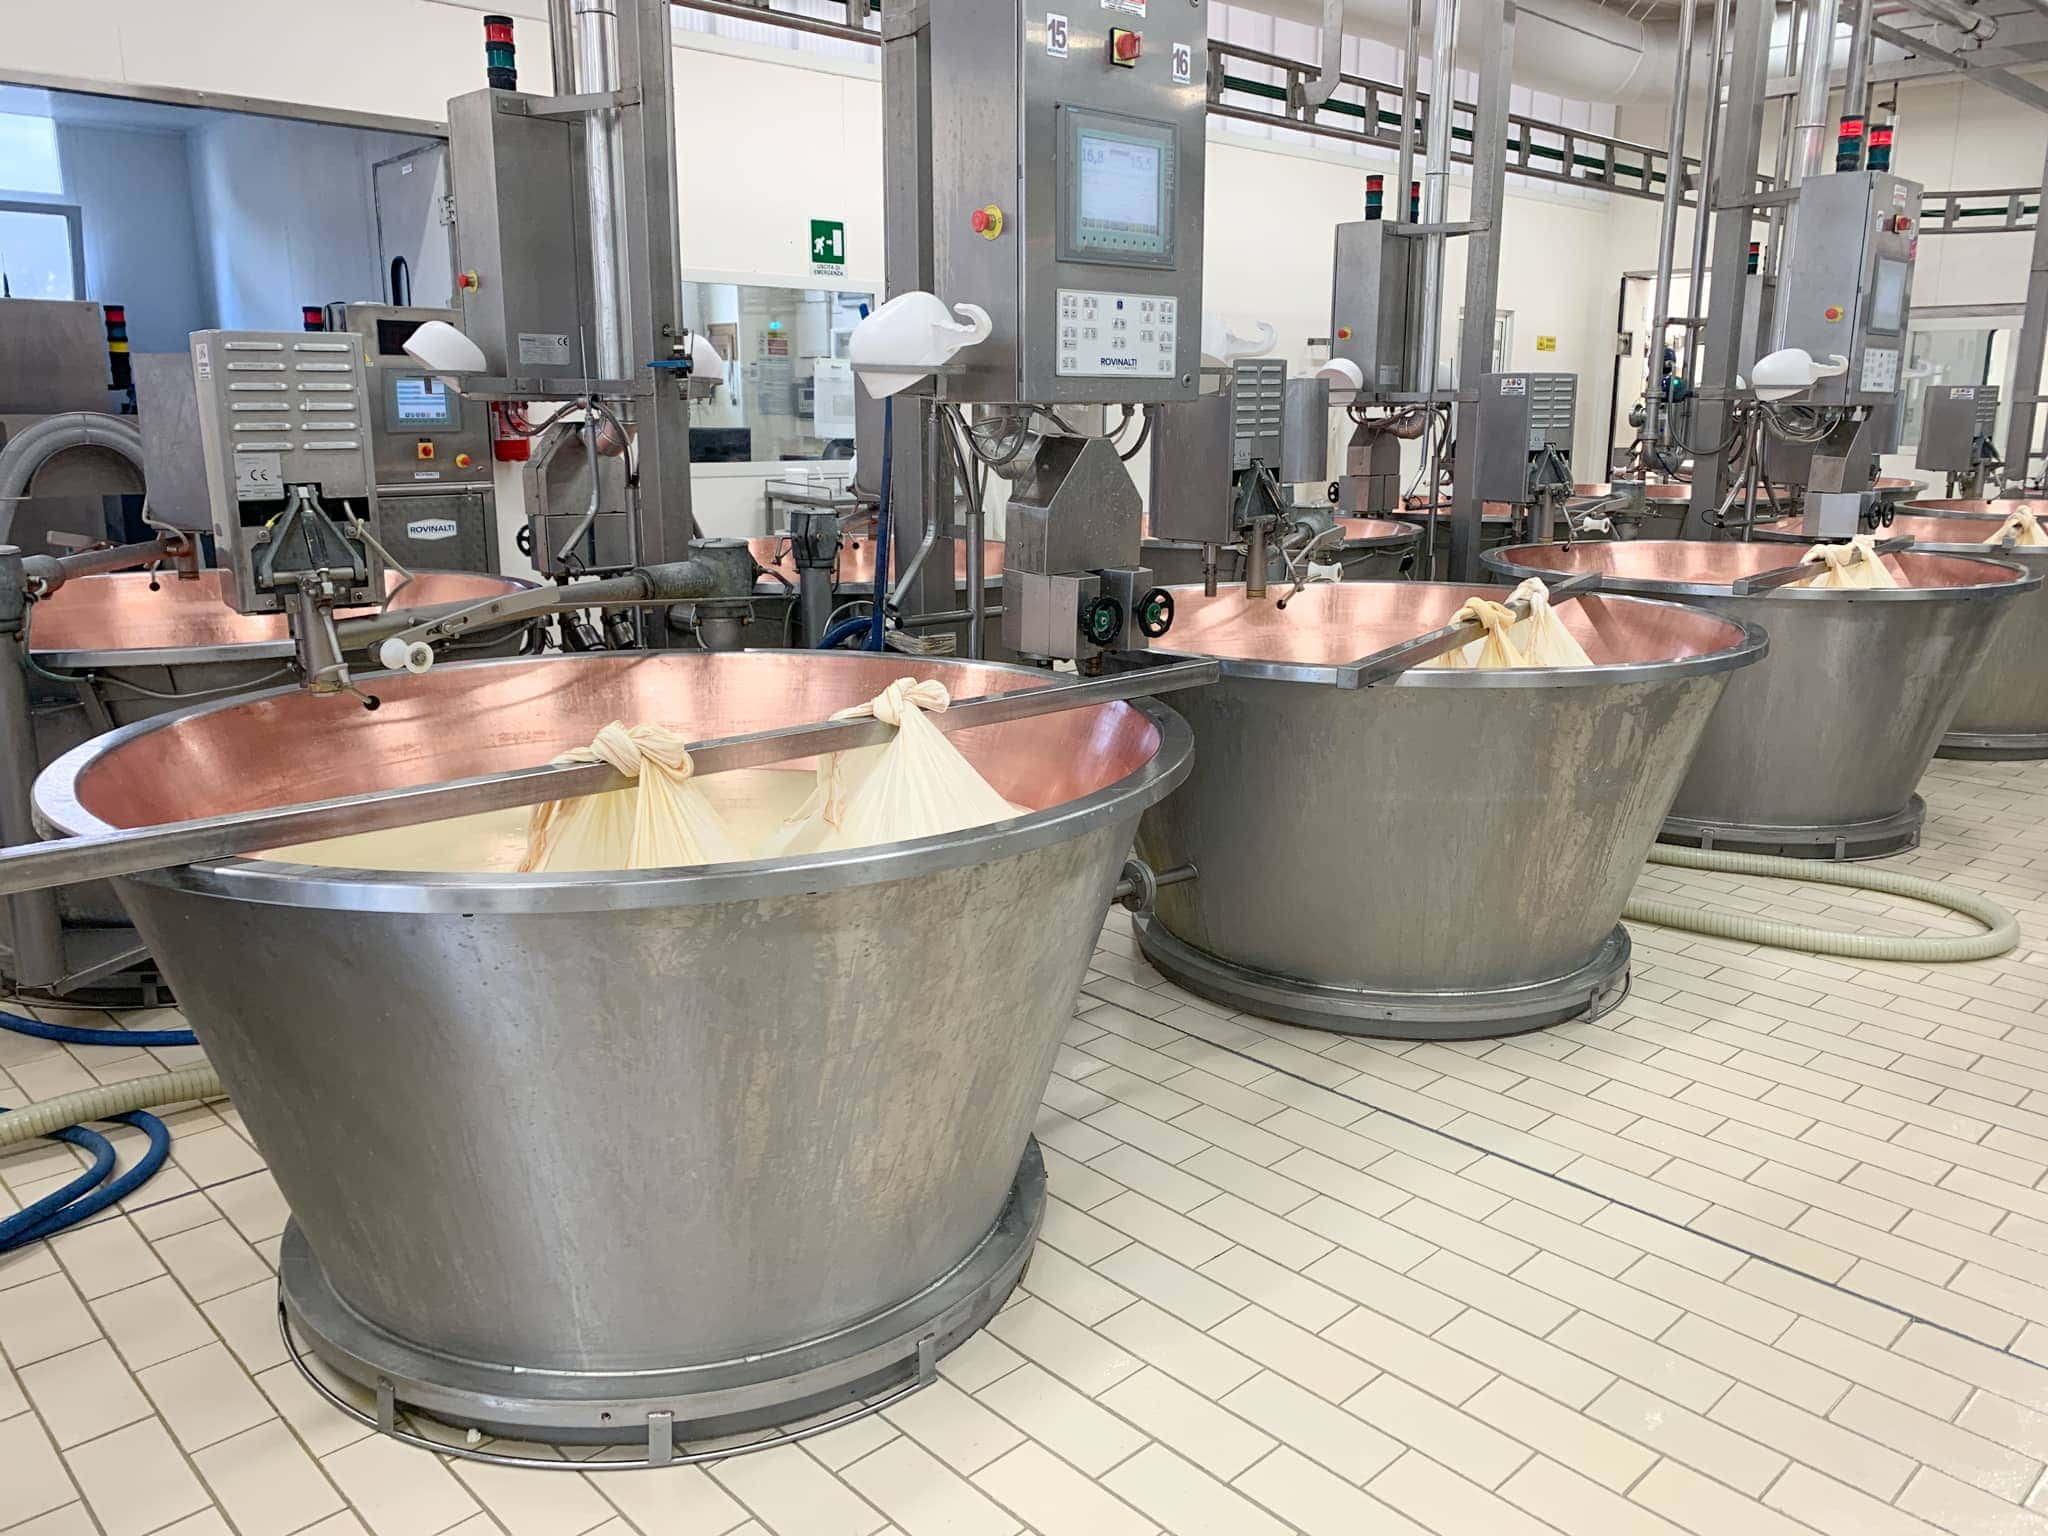 Milk being turned into cheese